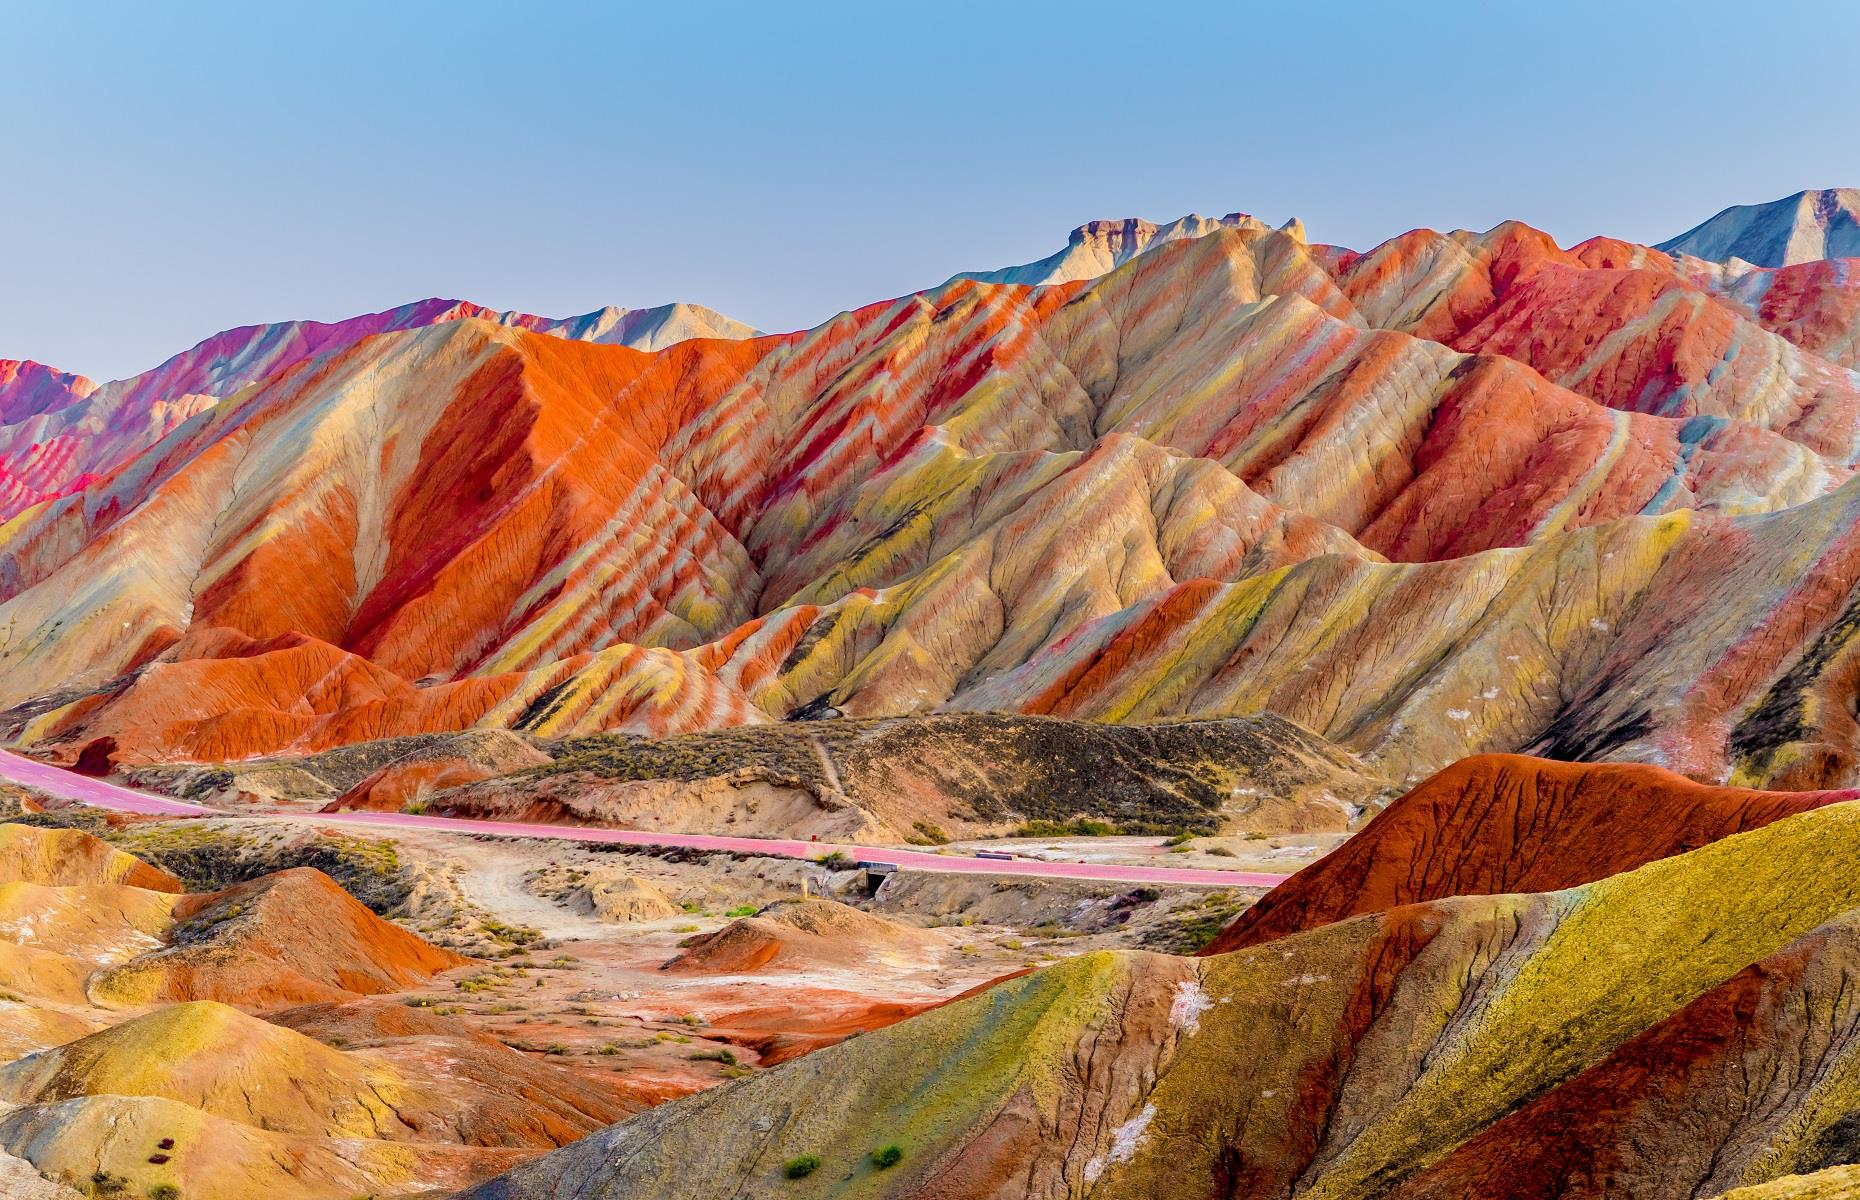 Slide 22 of 59: The rainbow-hued mountains in Zhangye National Geopark looks just like an artist's paint palette. Part of an UNESCO World Heritage Site, this stunning formation was created by natural erosion, when layers of sand, silt, iron and minerals blended together to create a kaleidoscope of colors. The incredible park appears to have been decorated by Mother Nature herself.